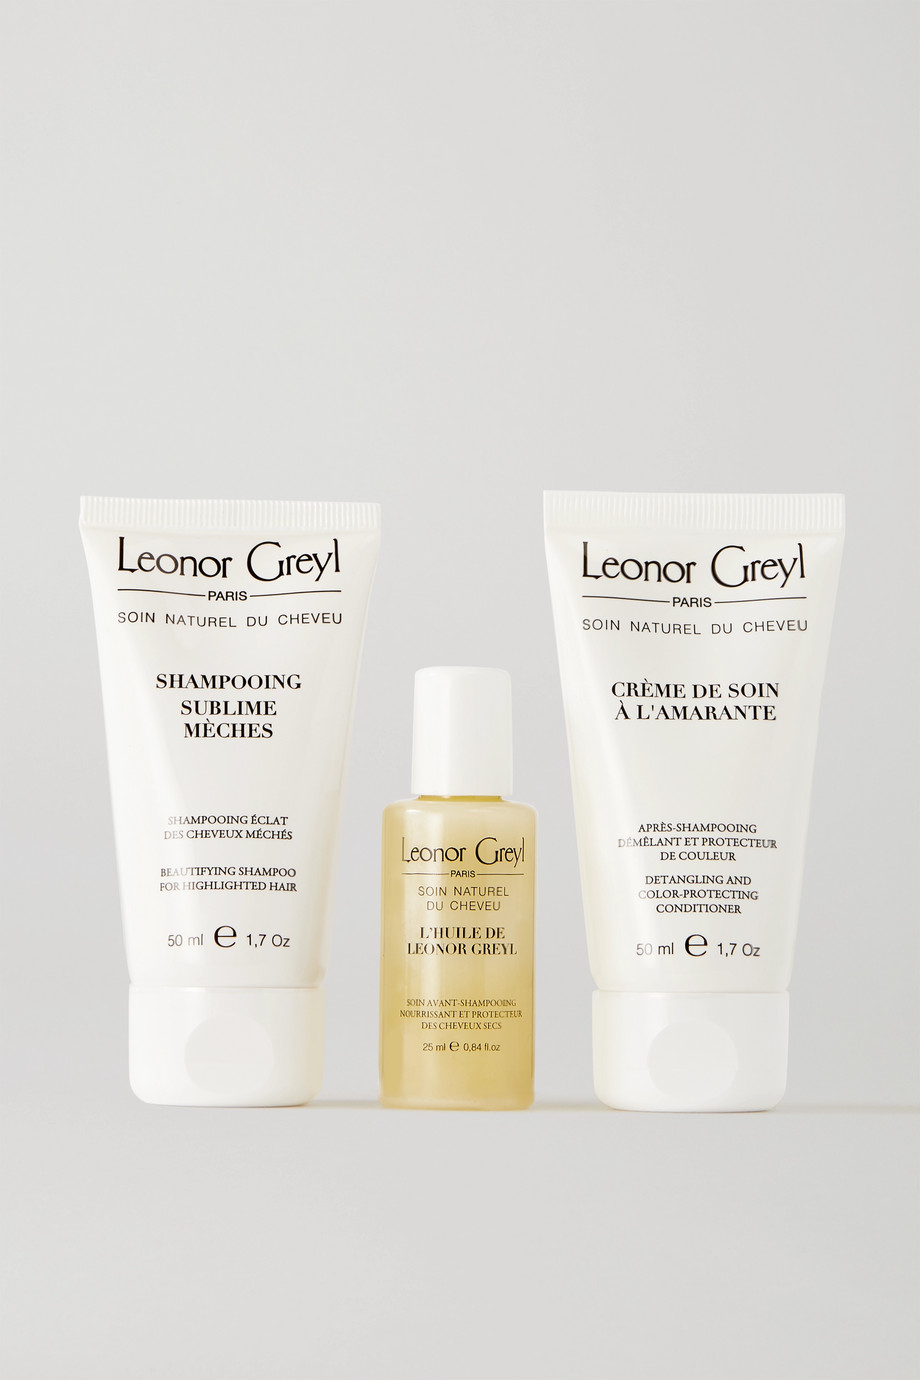 Leonor Greyl Paris Travel Kit For Volume